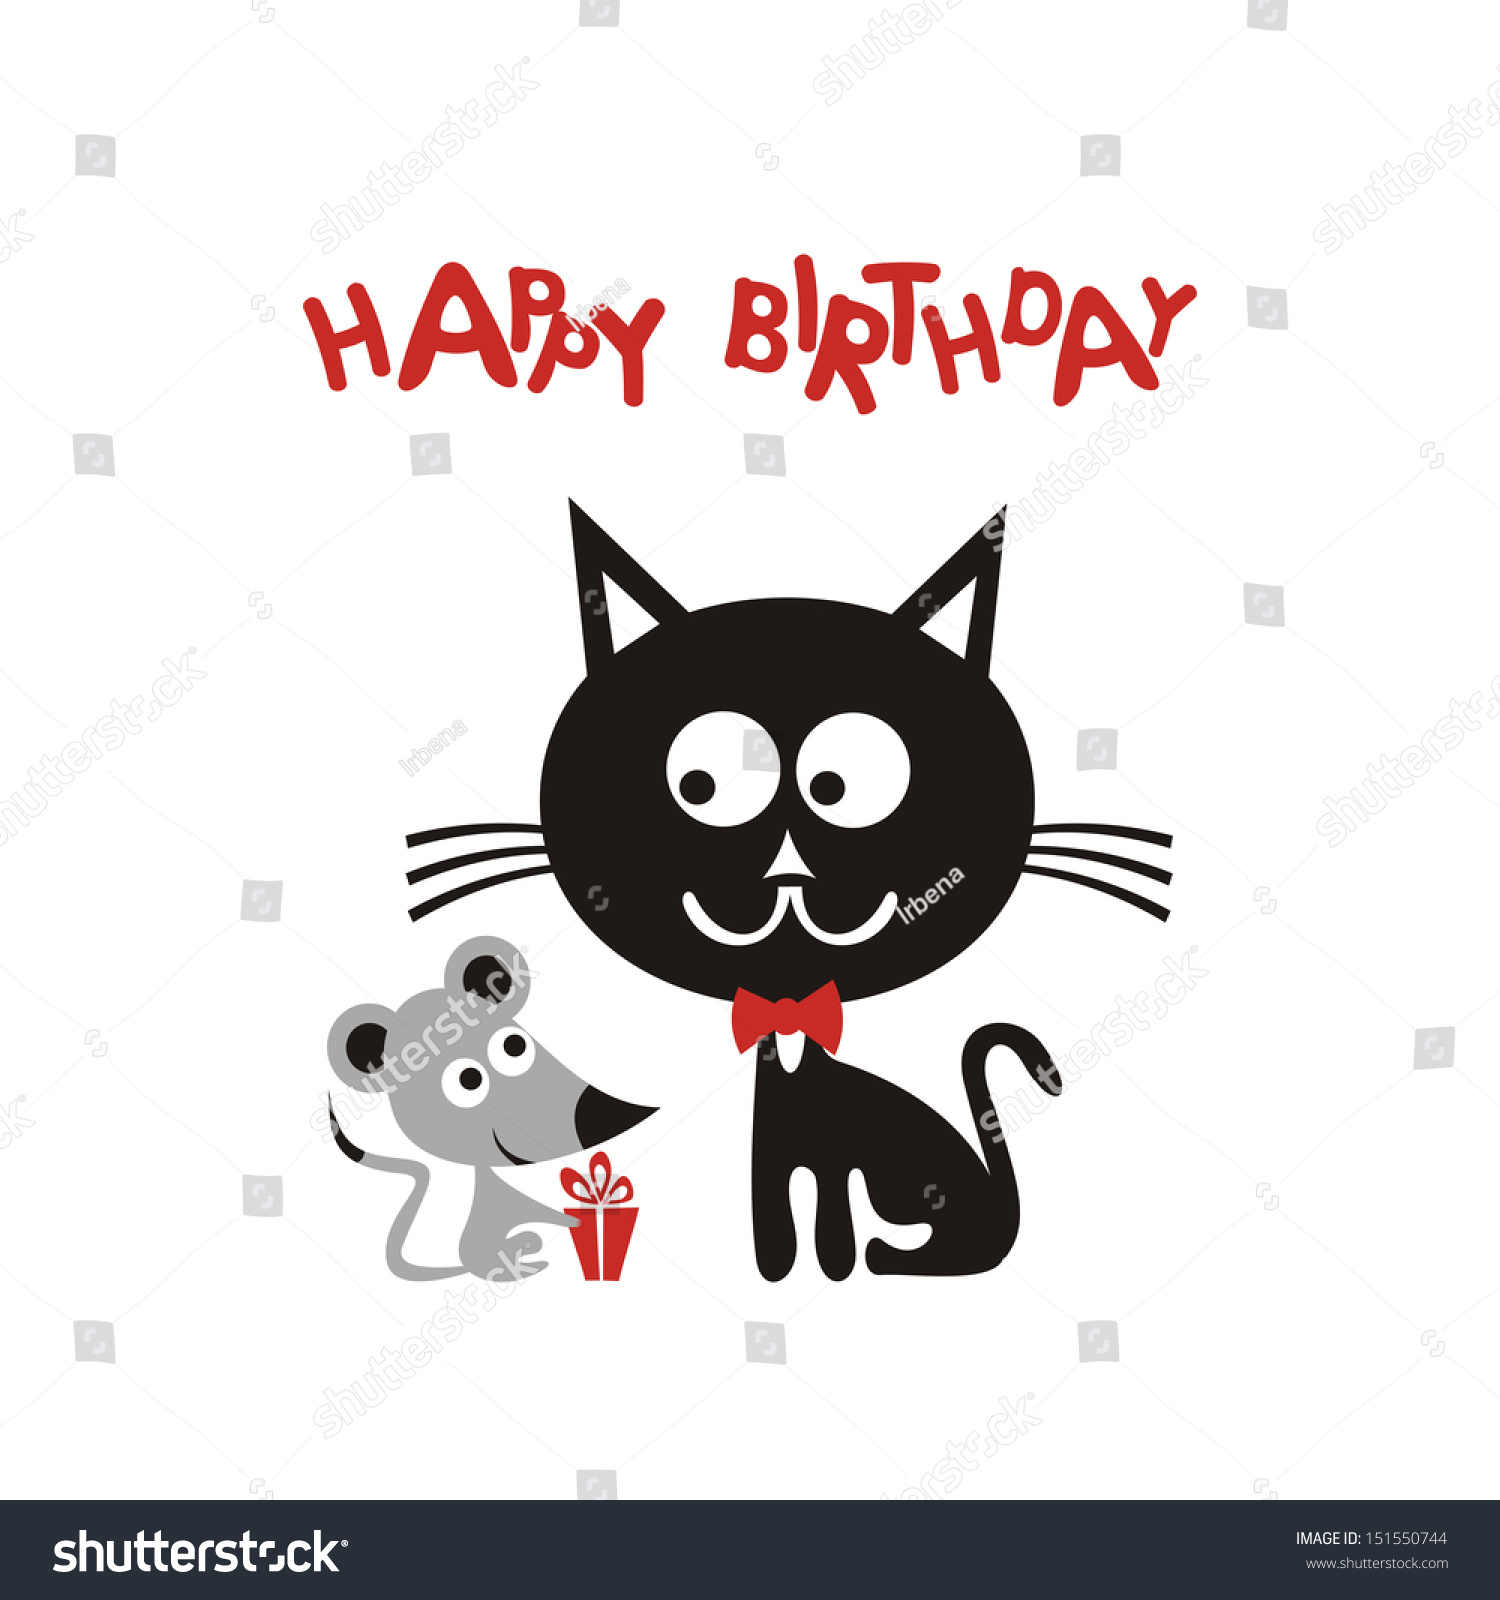 Happy Birthday Greeting Card With Cartoon Cute Mouse And